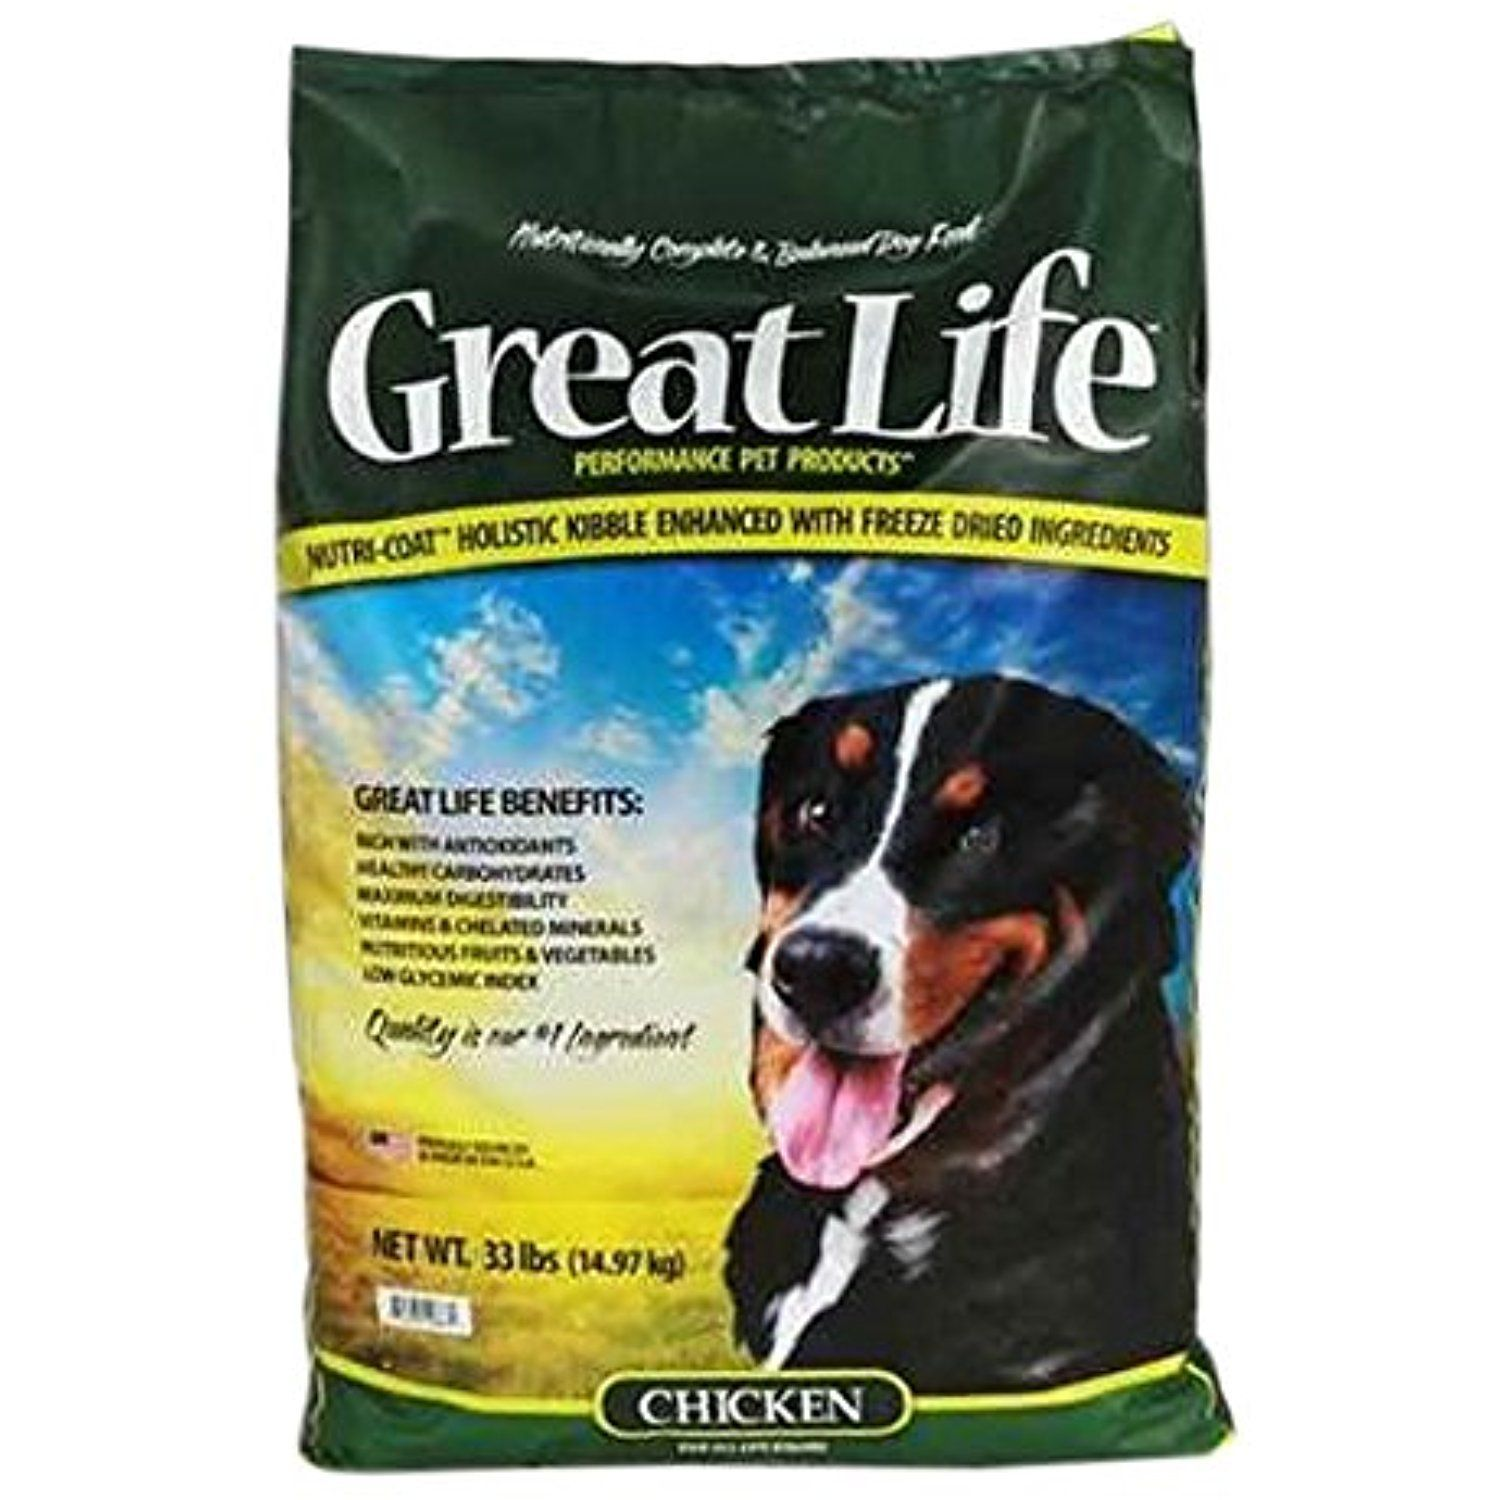 Great Life Freeze Dried Chicken Dog Food 33 Lb For You To View